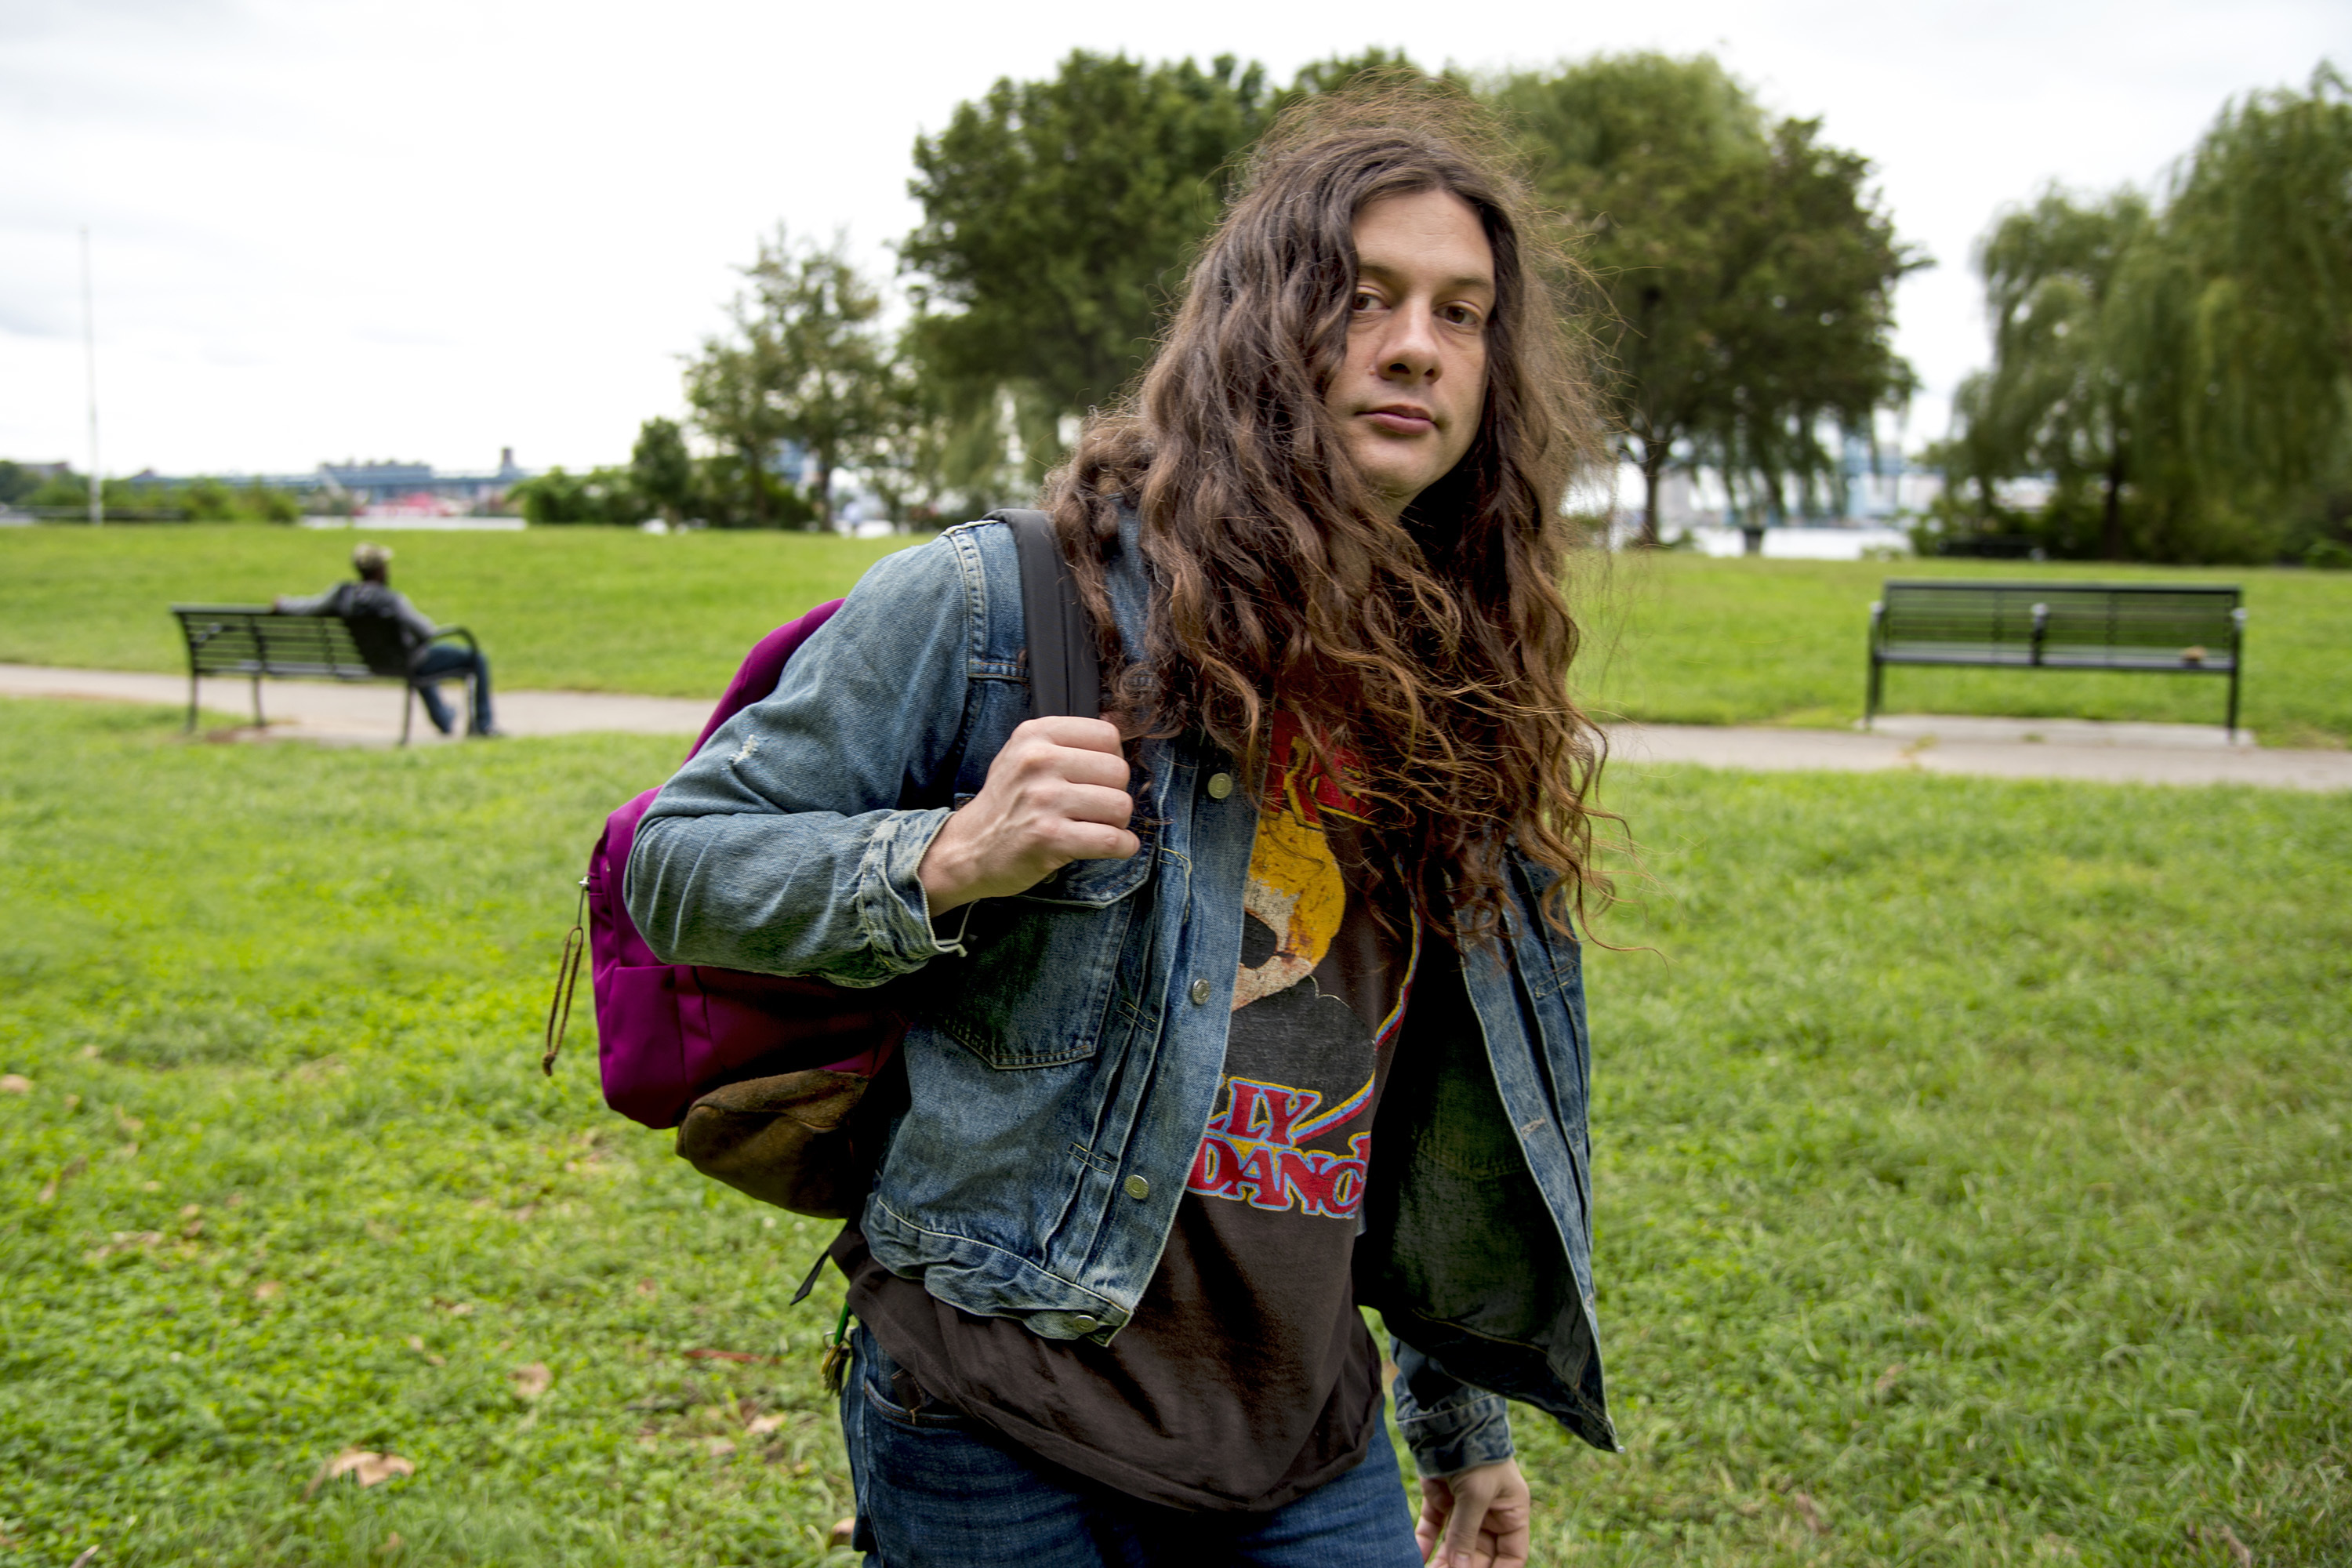 Philadelphia songwriter and guitarist Kurt Vile is photographed in Penn Treaty Park September 20, 2018. He has his first new record in three years, Bottle It In, coming out in October. TOM GRALISH / Staff Photographer